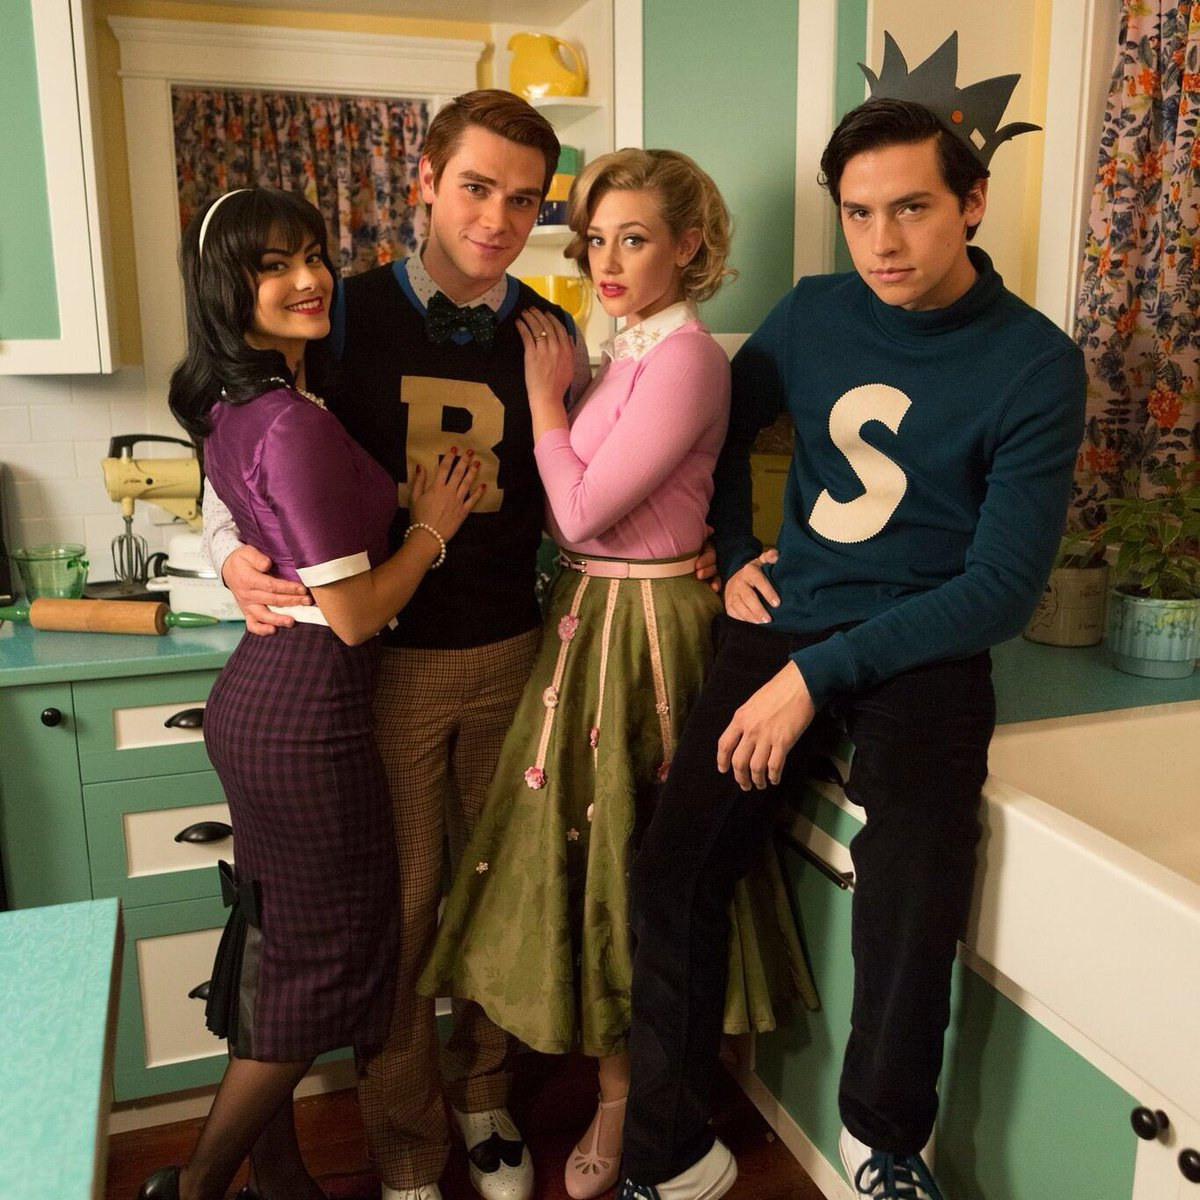 The complete first season of #Riverdale is now on @netflix. Stream it now and get back to us when you watch episode 7&#39;s opener.<br>http://pic.twitter.com/R3s2cn2mE9